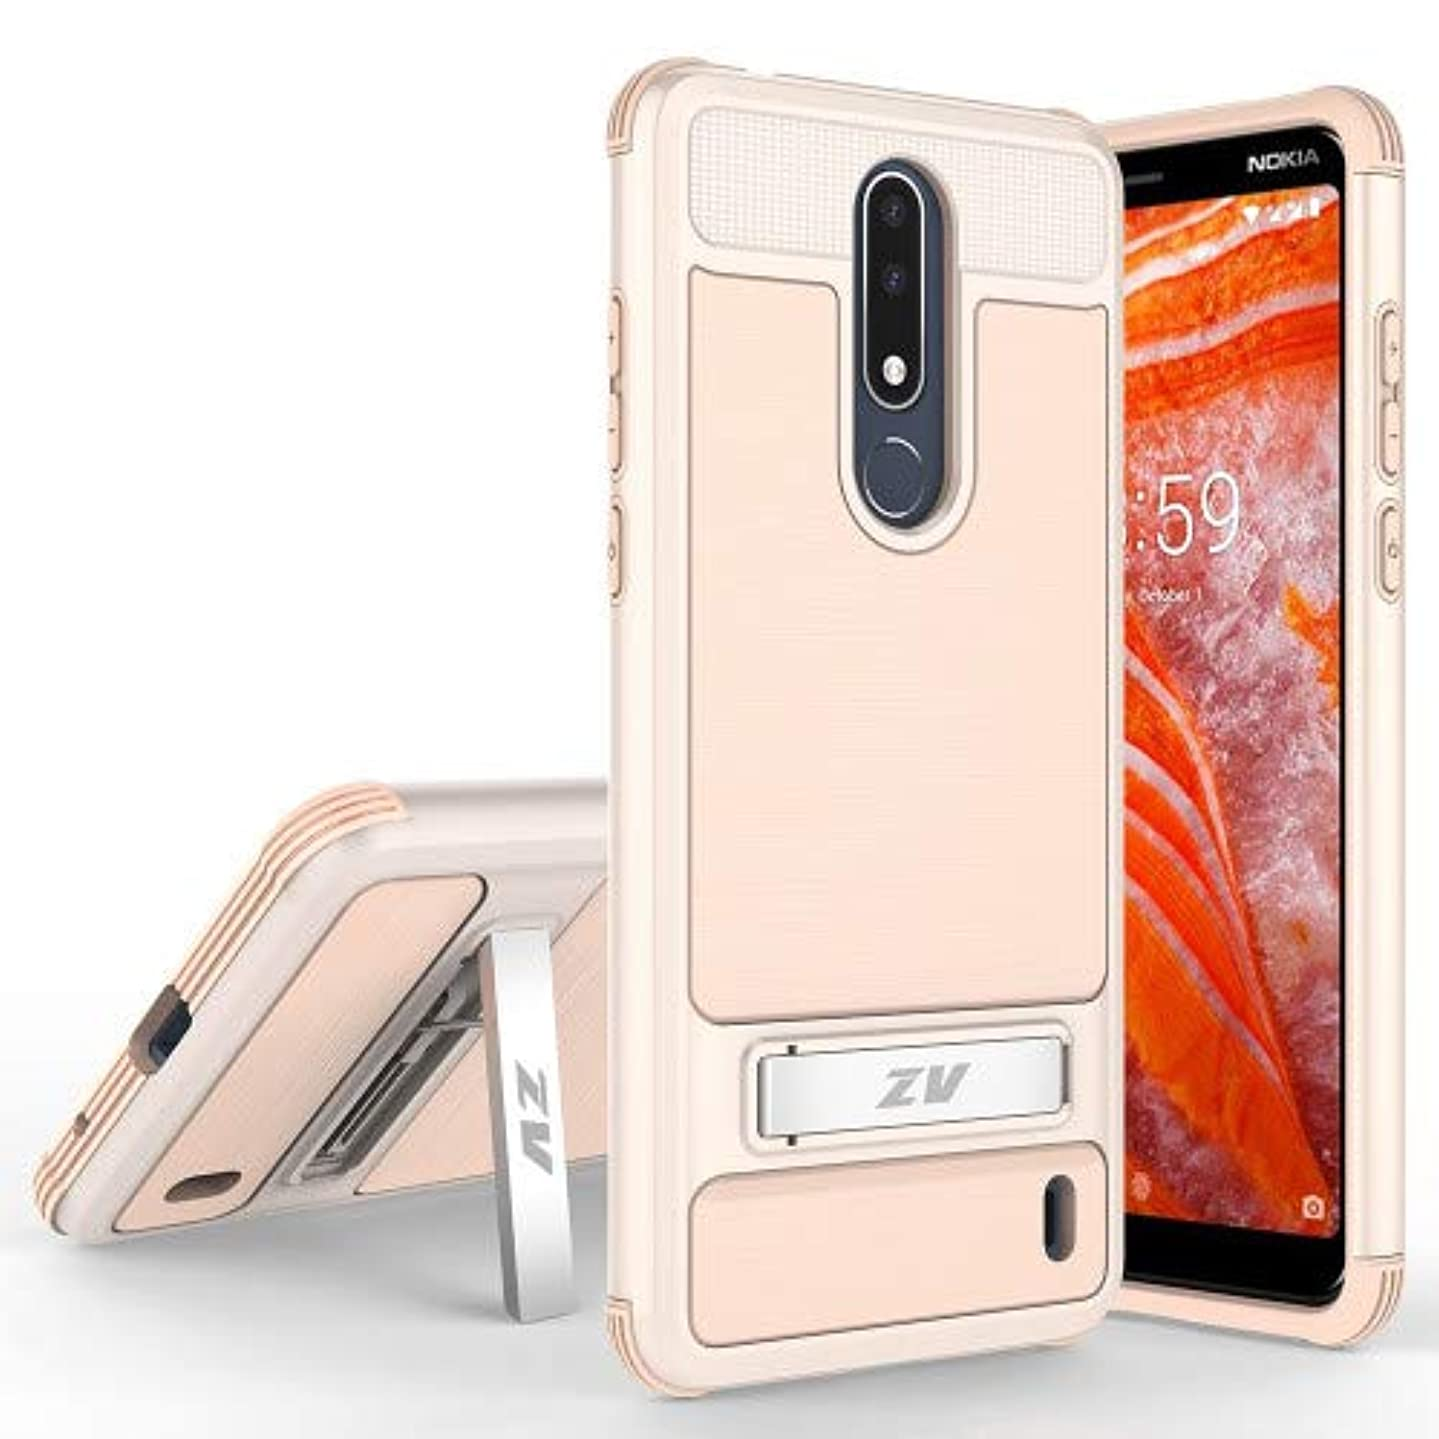 Phonelicious Cricket Nokia 3.1 Plus Case with Stand Heavy Duty Rugged Slim Durable Hybrid Dual Layer Shockproof Phone Cover Compatible with Nokia 3.1+ (Rose Gold)